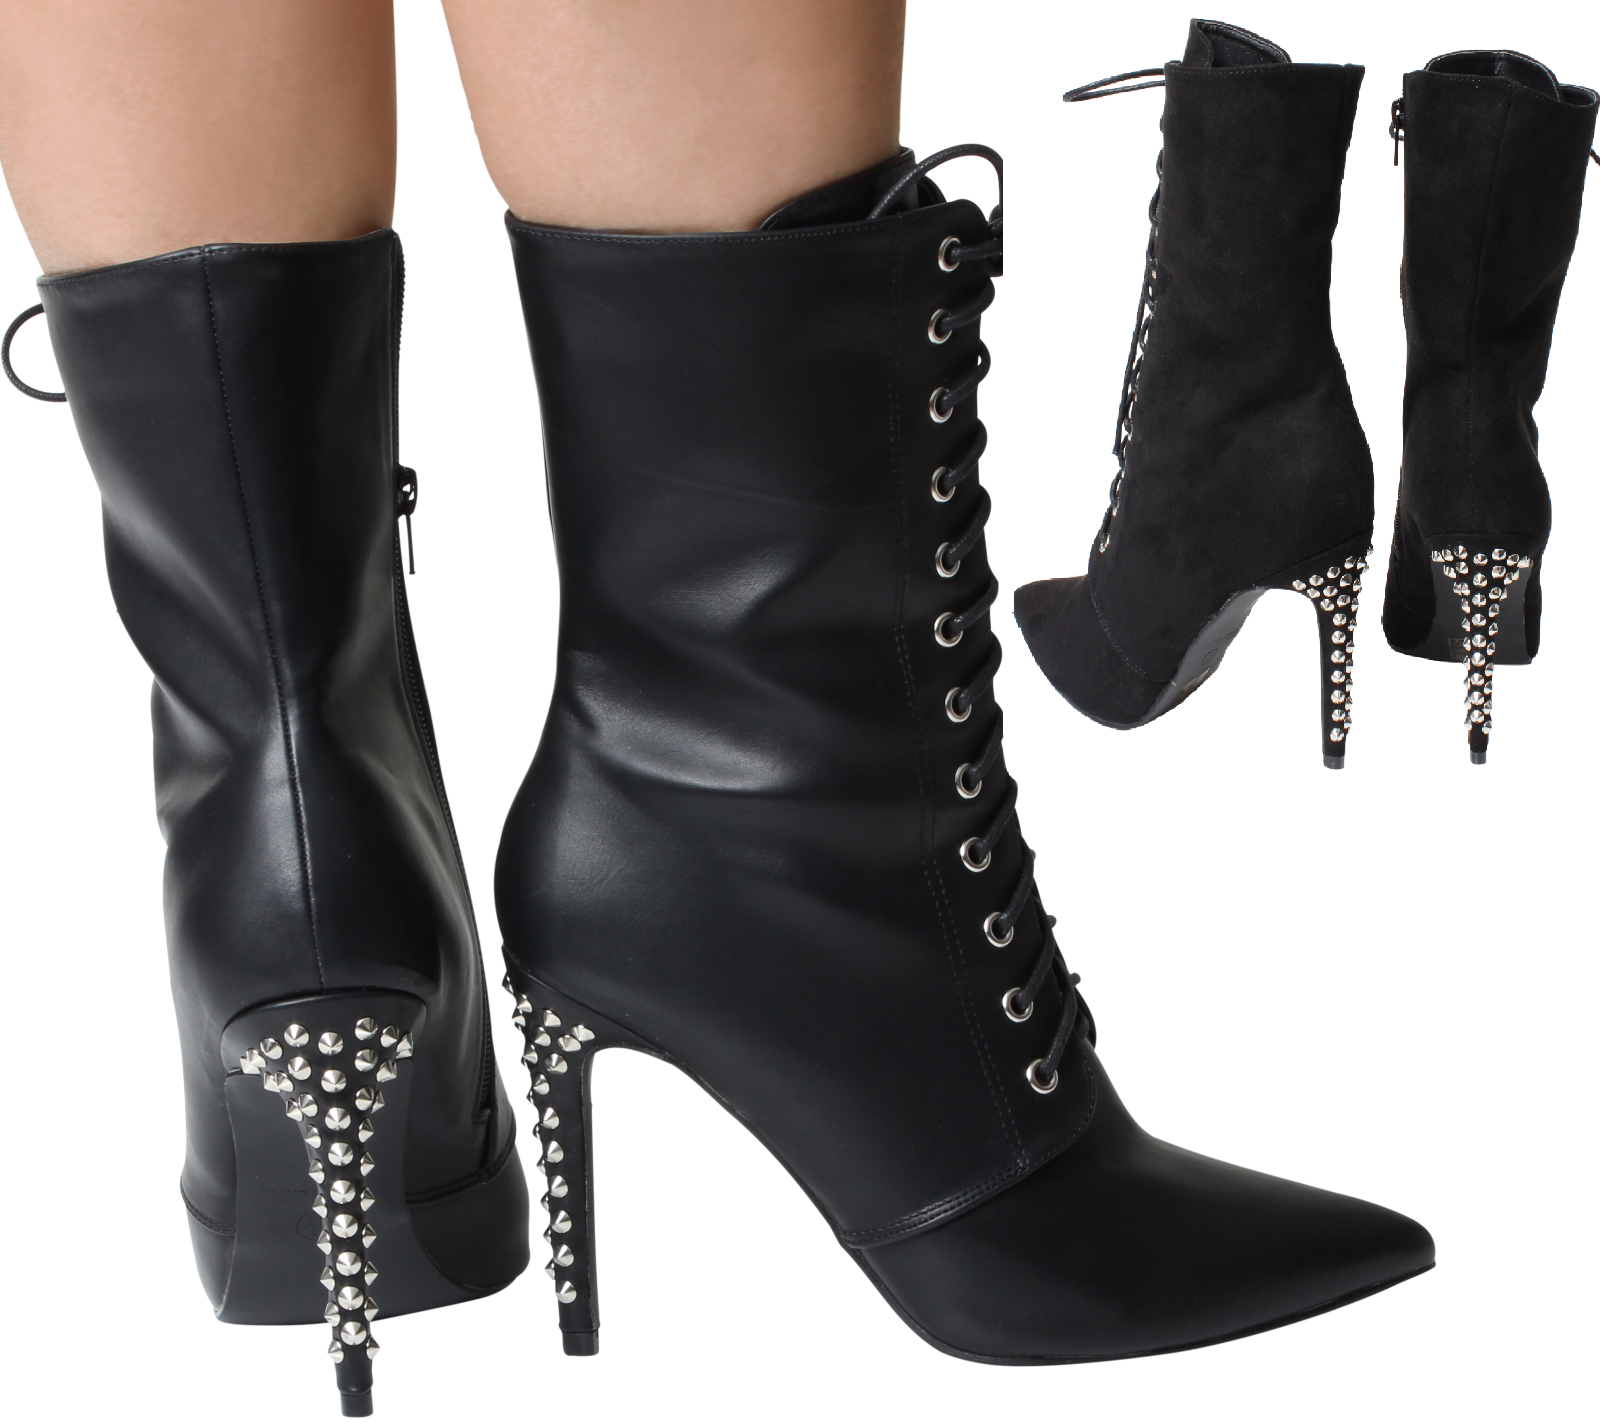 Ankle Black SteamPunk Victorian Boots Platform Lace Up High Stilleto Heel Spikes